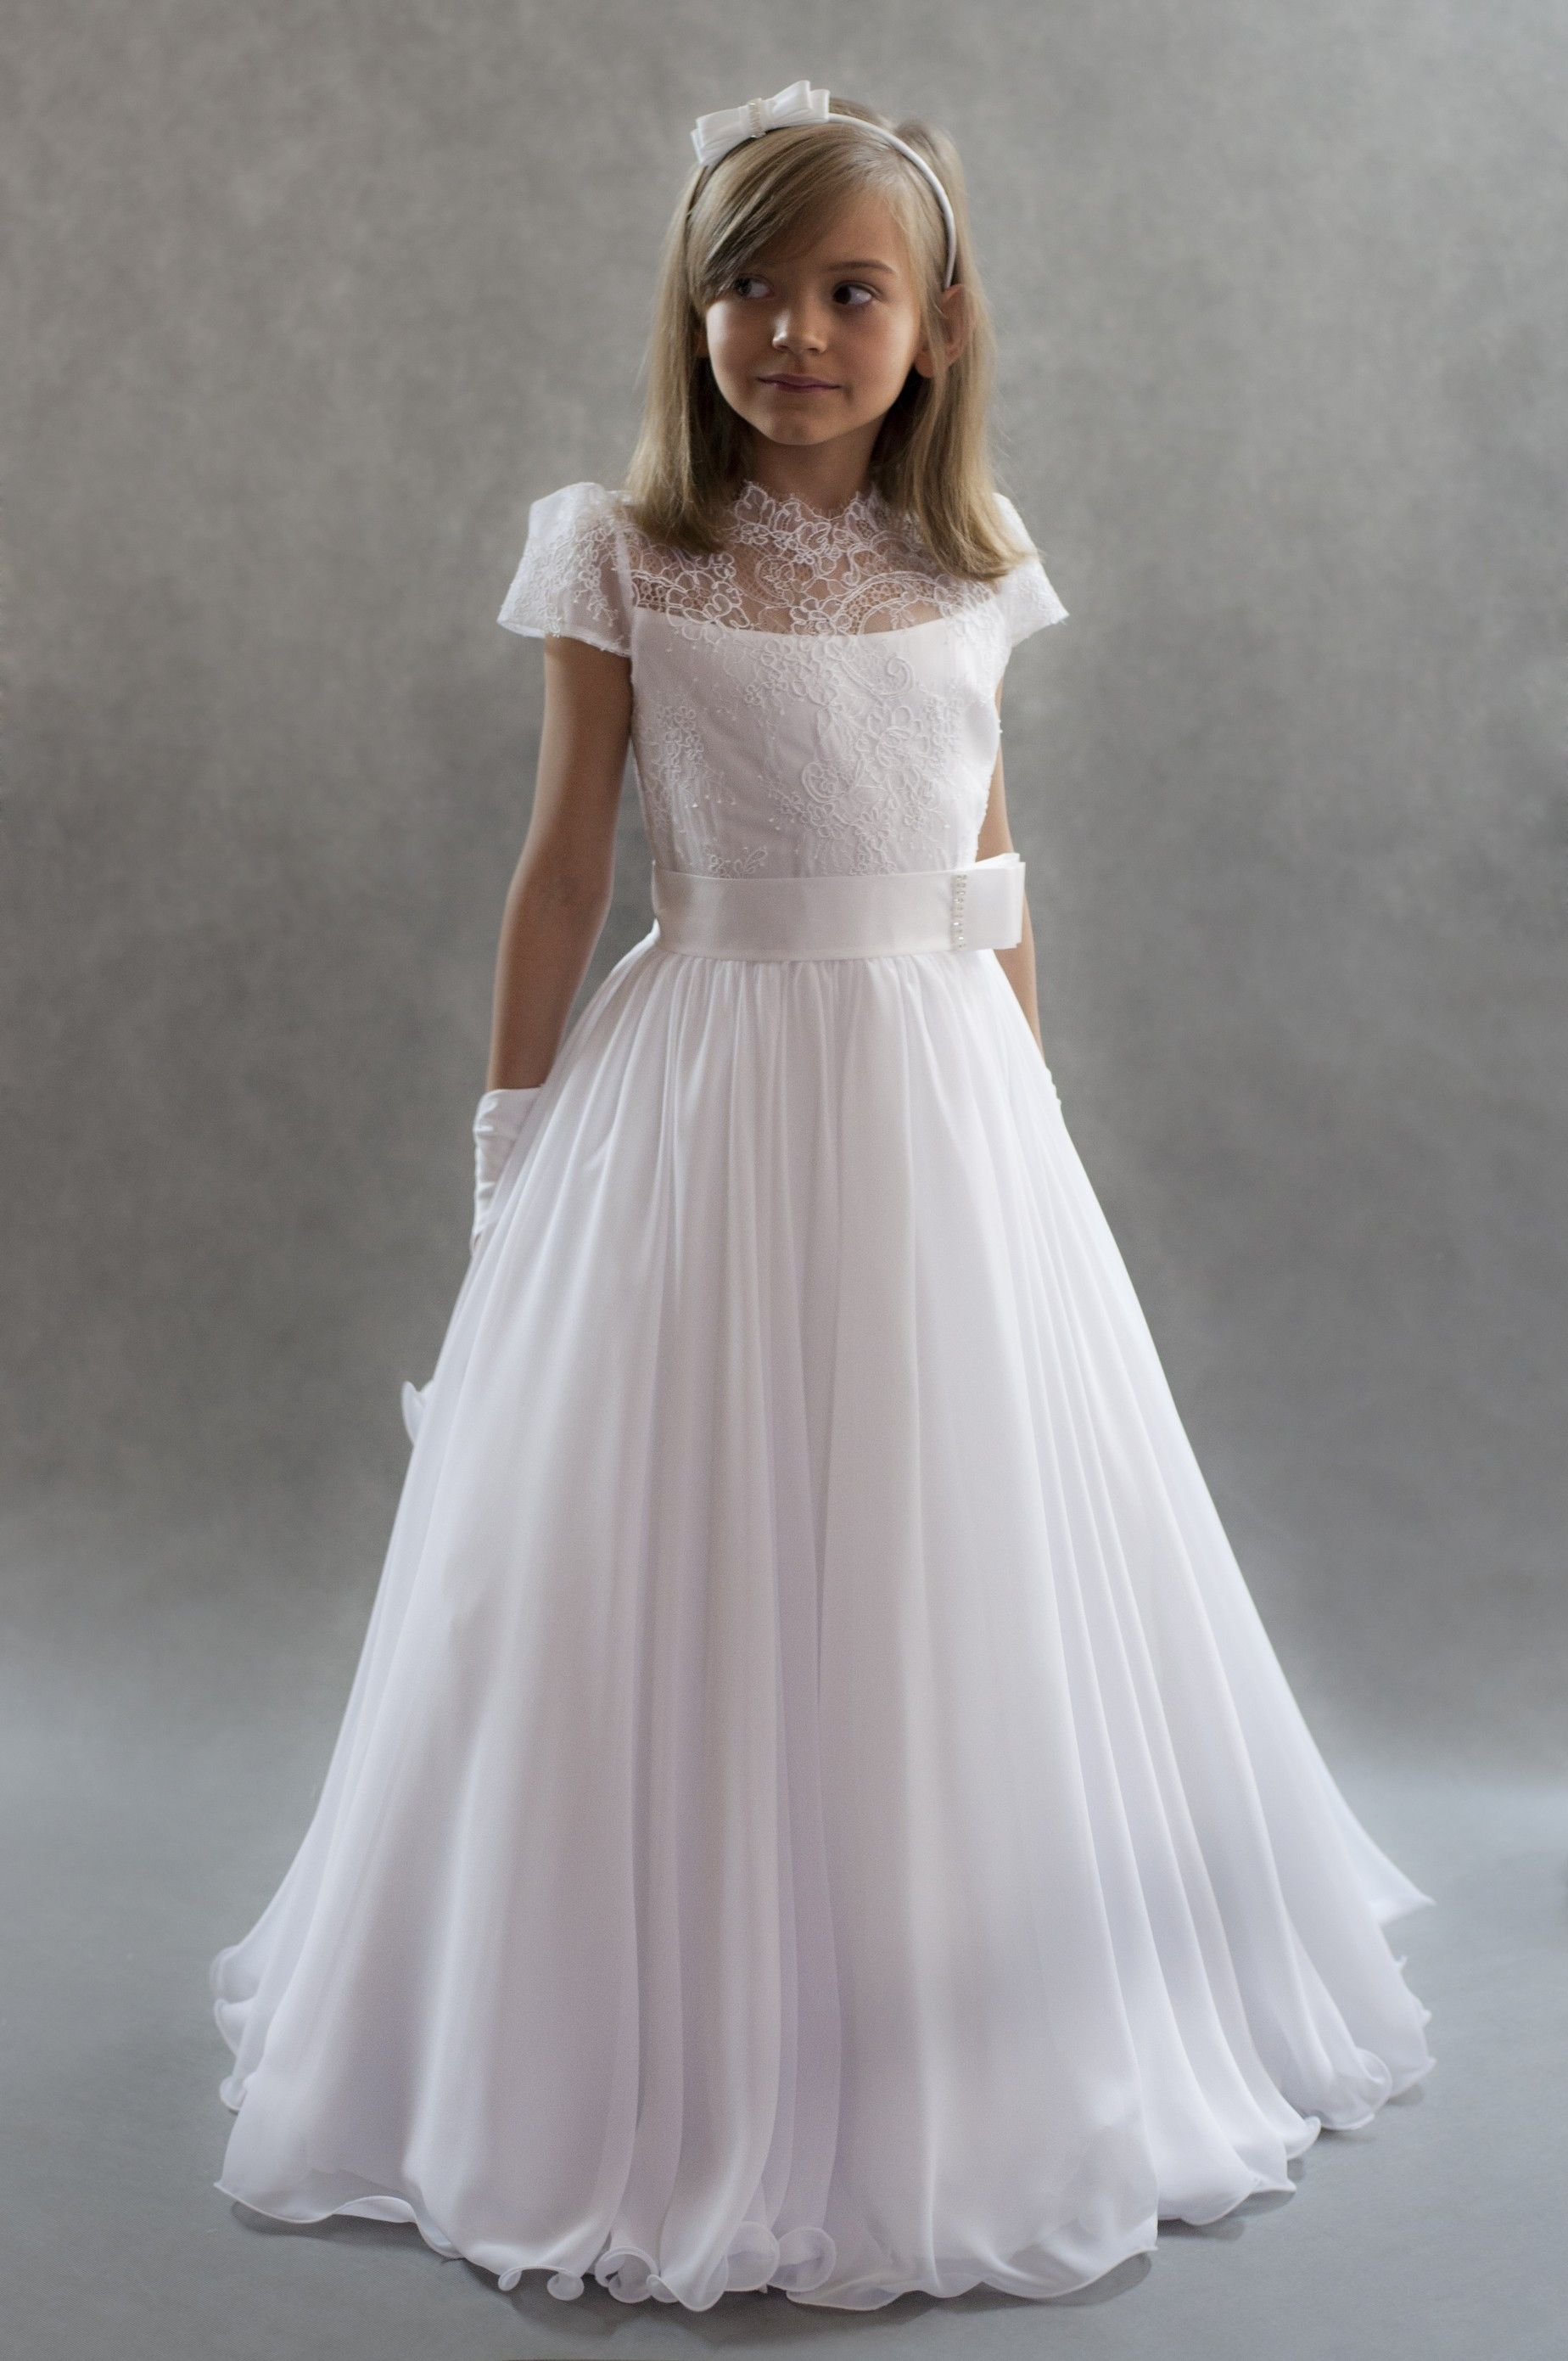 This Beautiful Full Length White Communion Dress Is Beautifully